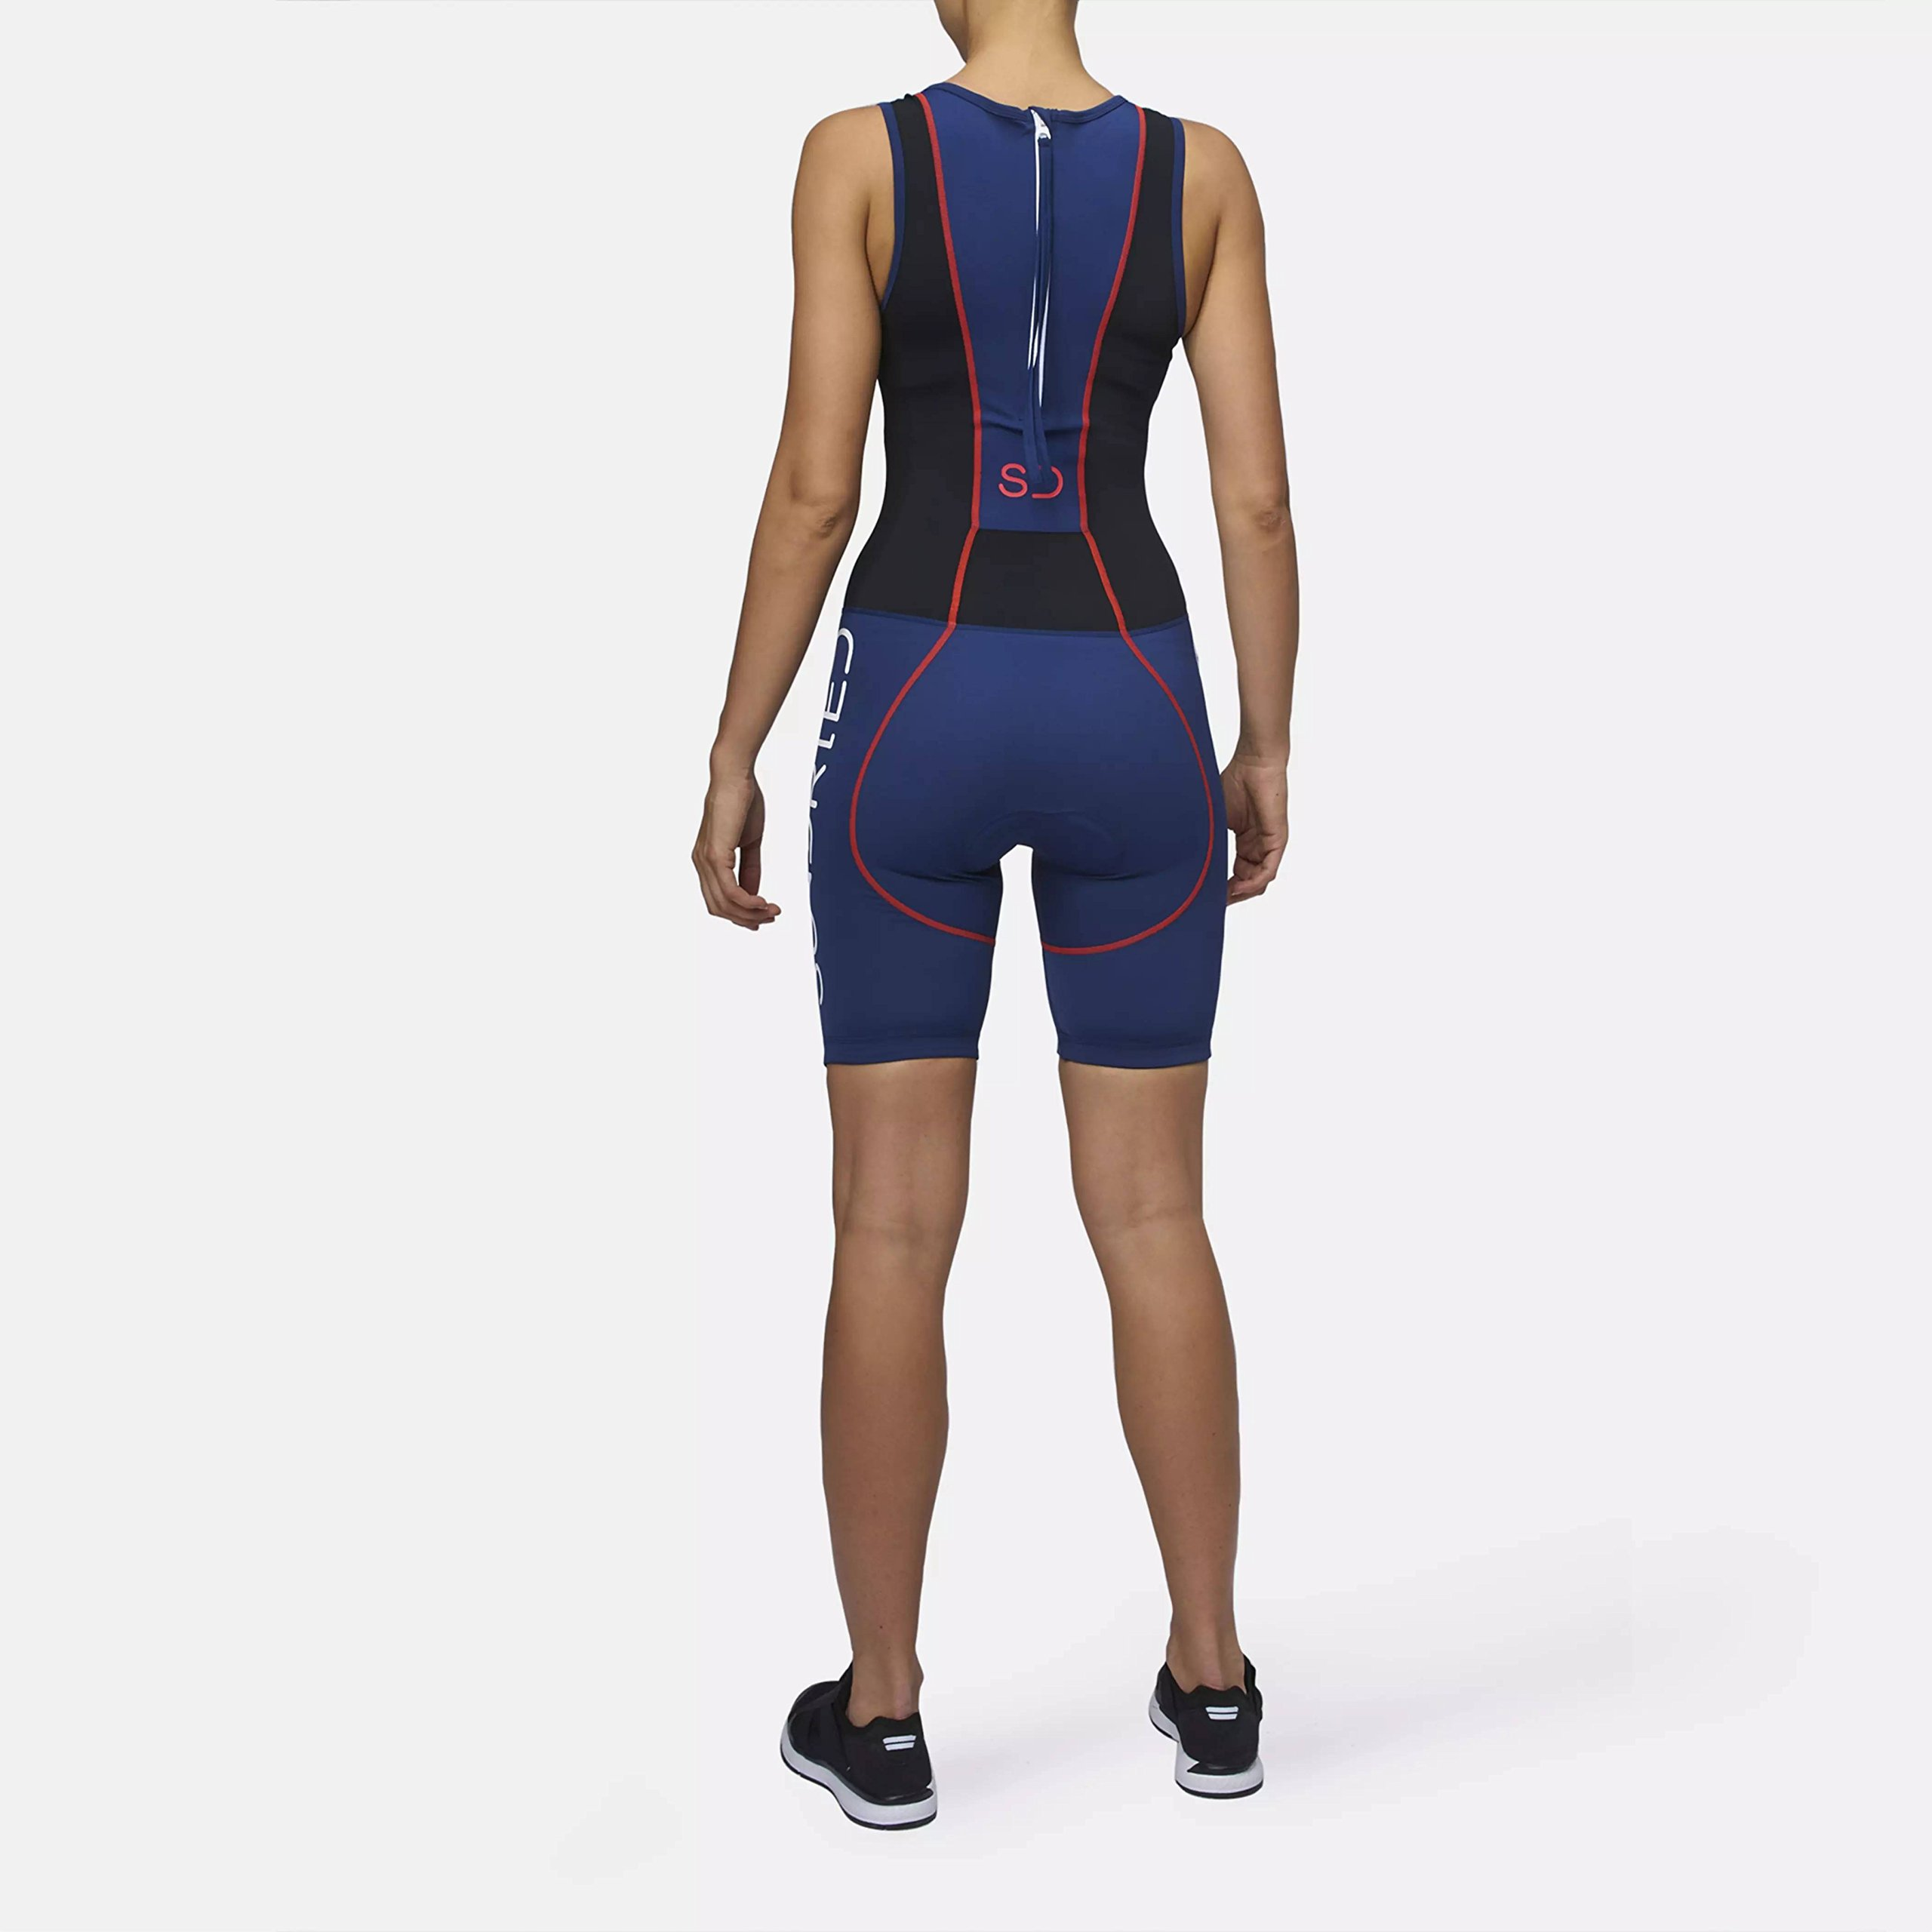 Sundried Womens Premium Padded Triathlon Tri Suit Compression Duathlon Running Swimming Cycling Skin Suit (XX-Large) by Sundried (Image #4)